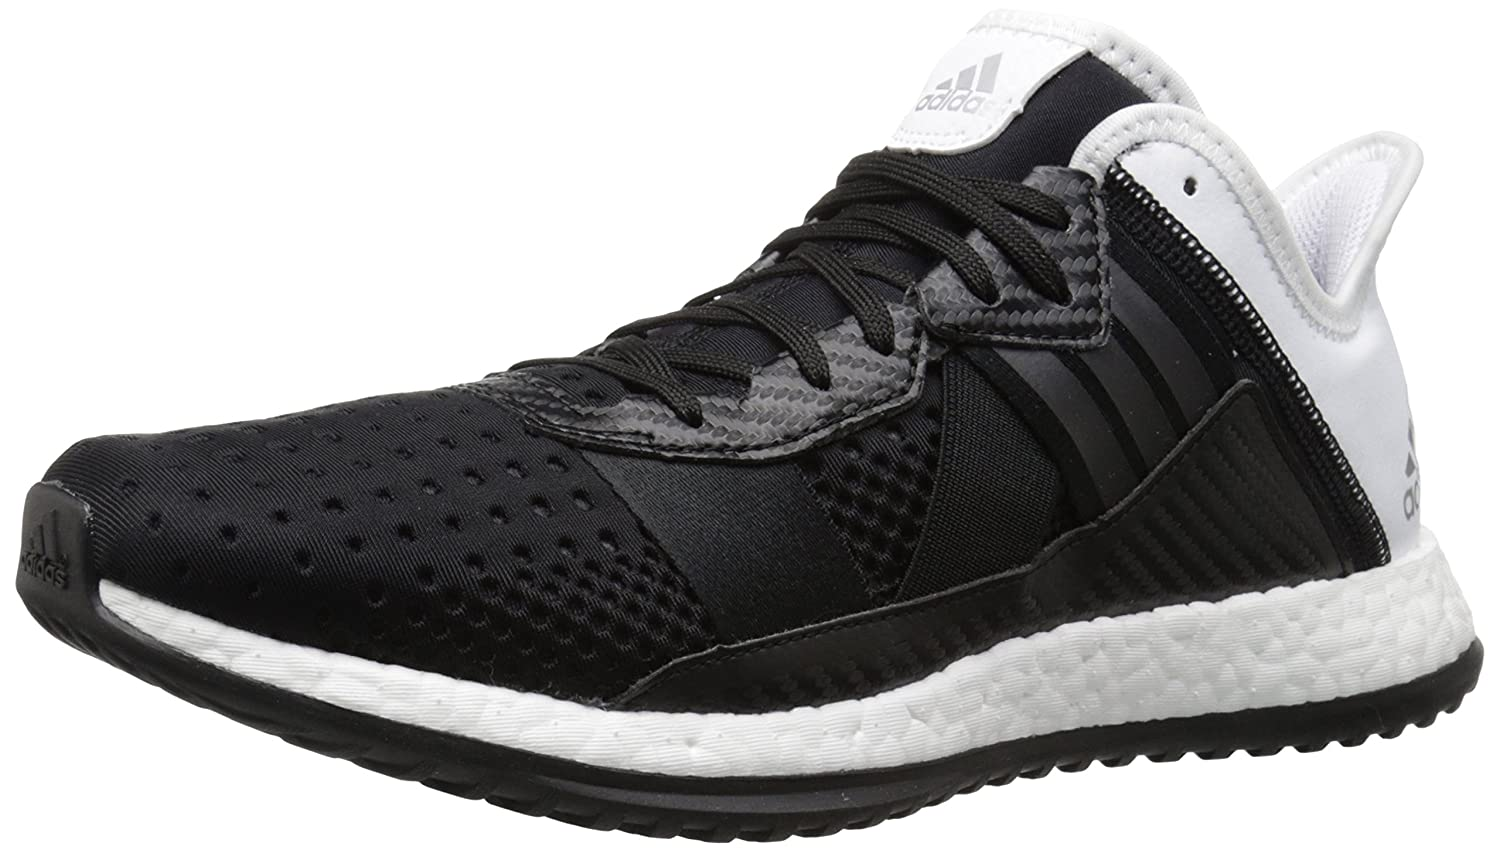 921a504eaf770 Adidas Men s Pure Boost ZG Trainer Training Shoe